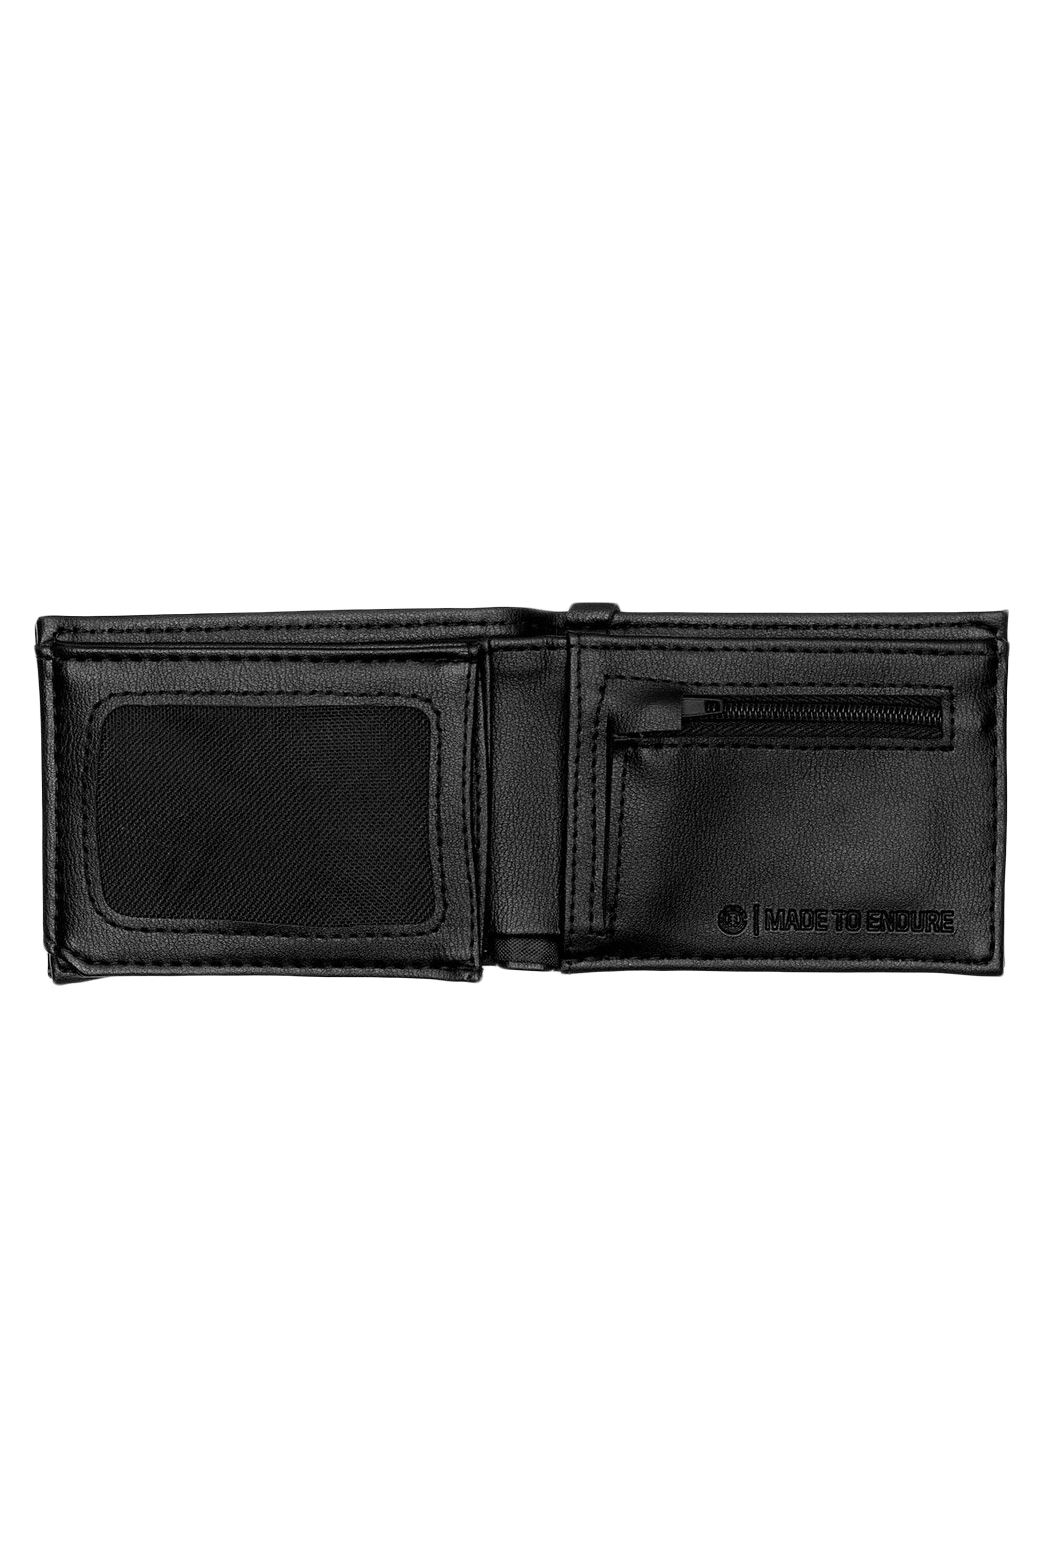 Carteira Pele Element SEGUR LEATHER WALLET Black